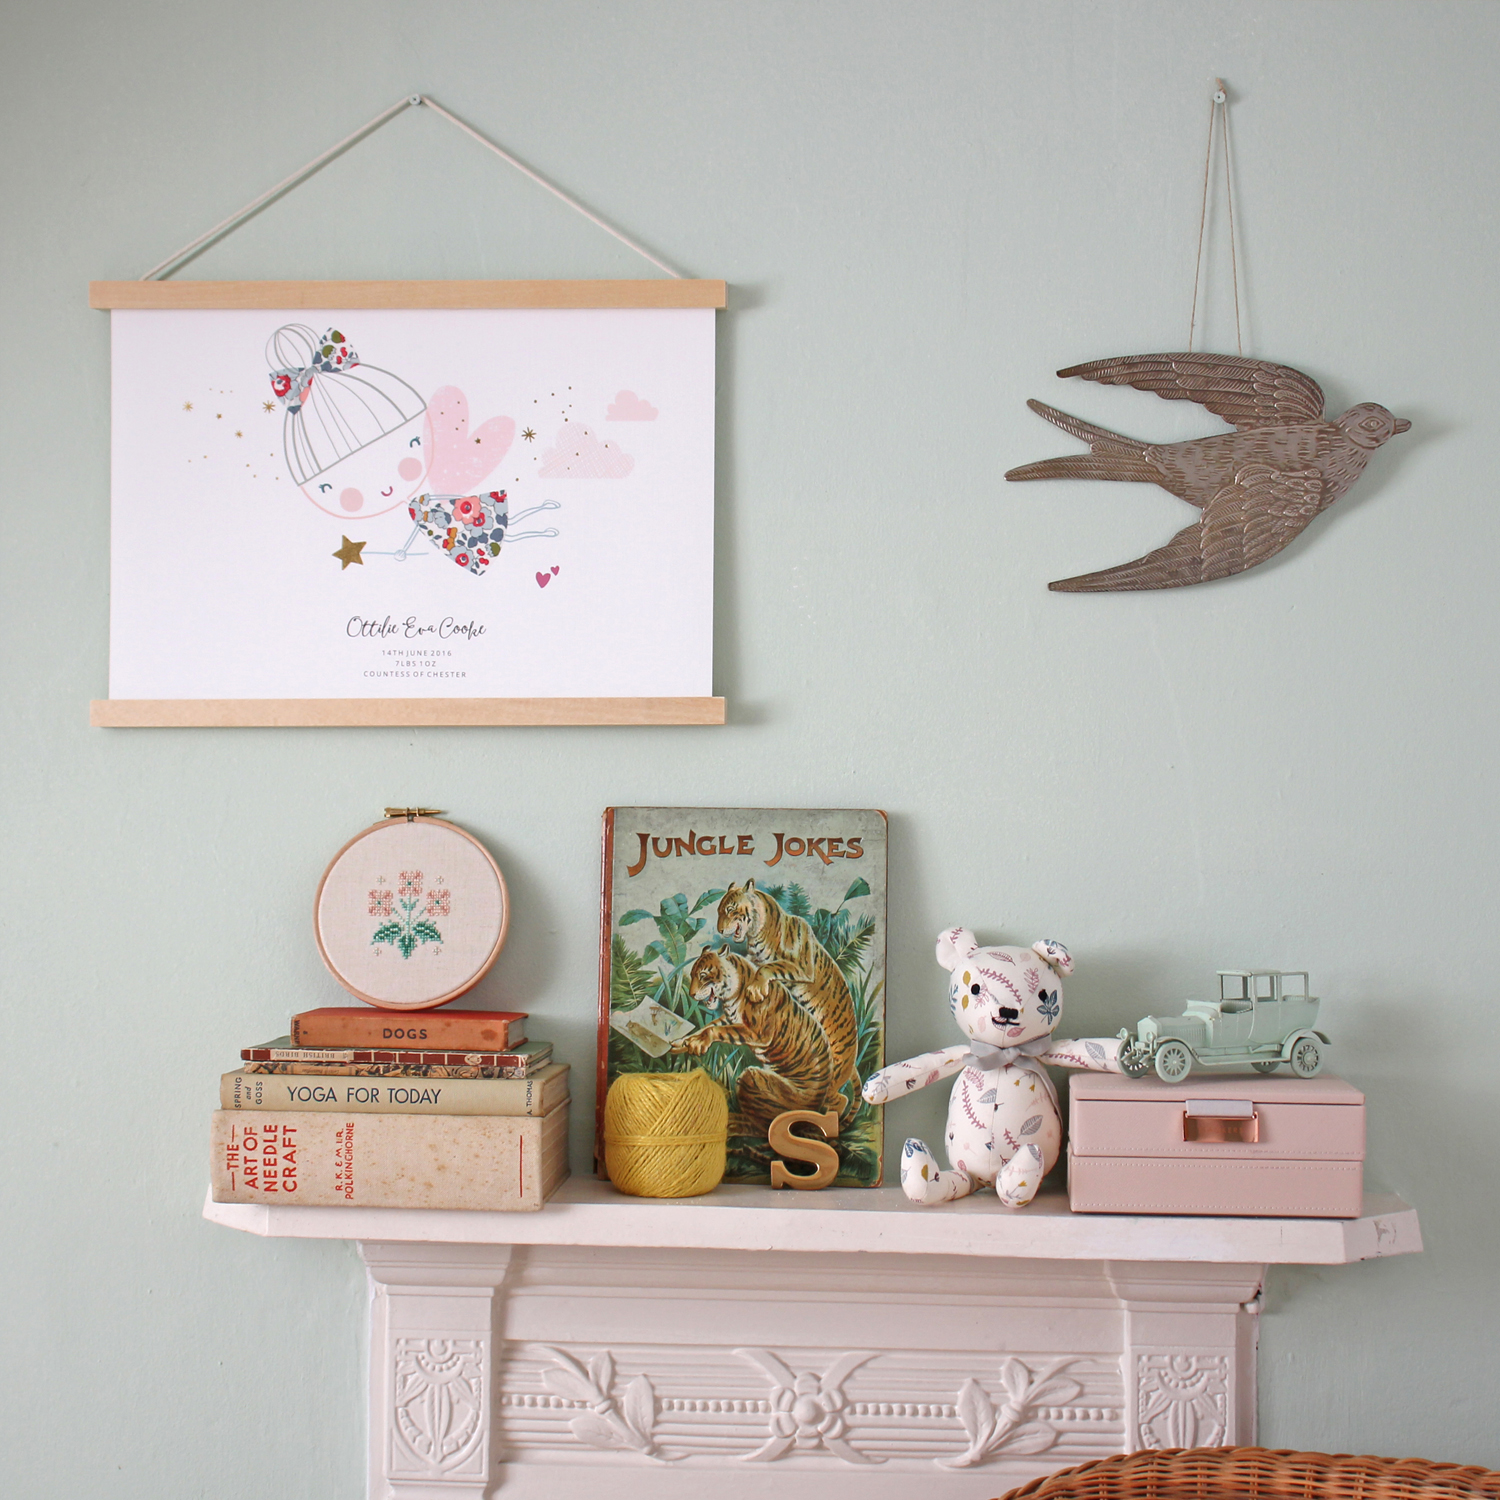 The-Charming-Press-product-photography-nancy-straughan-nursery-prints-art-styling-liberty-fairy.jpg